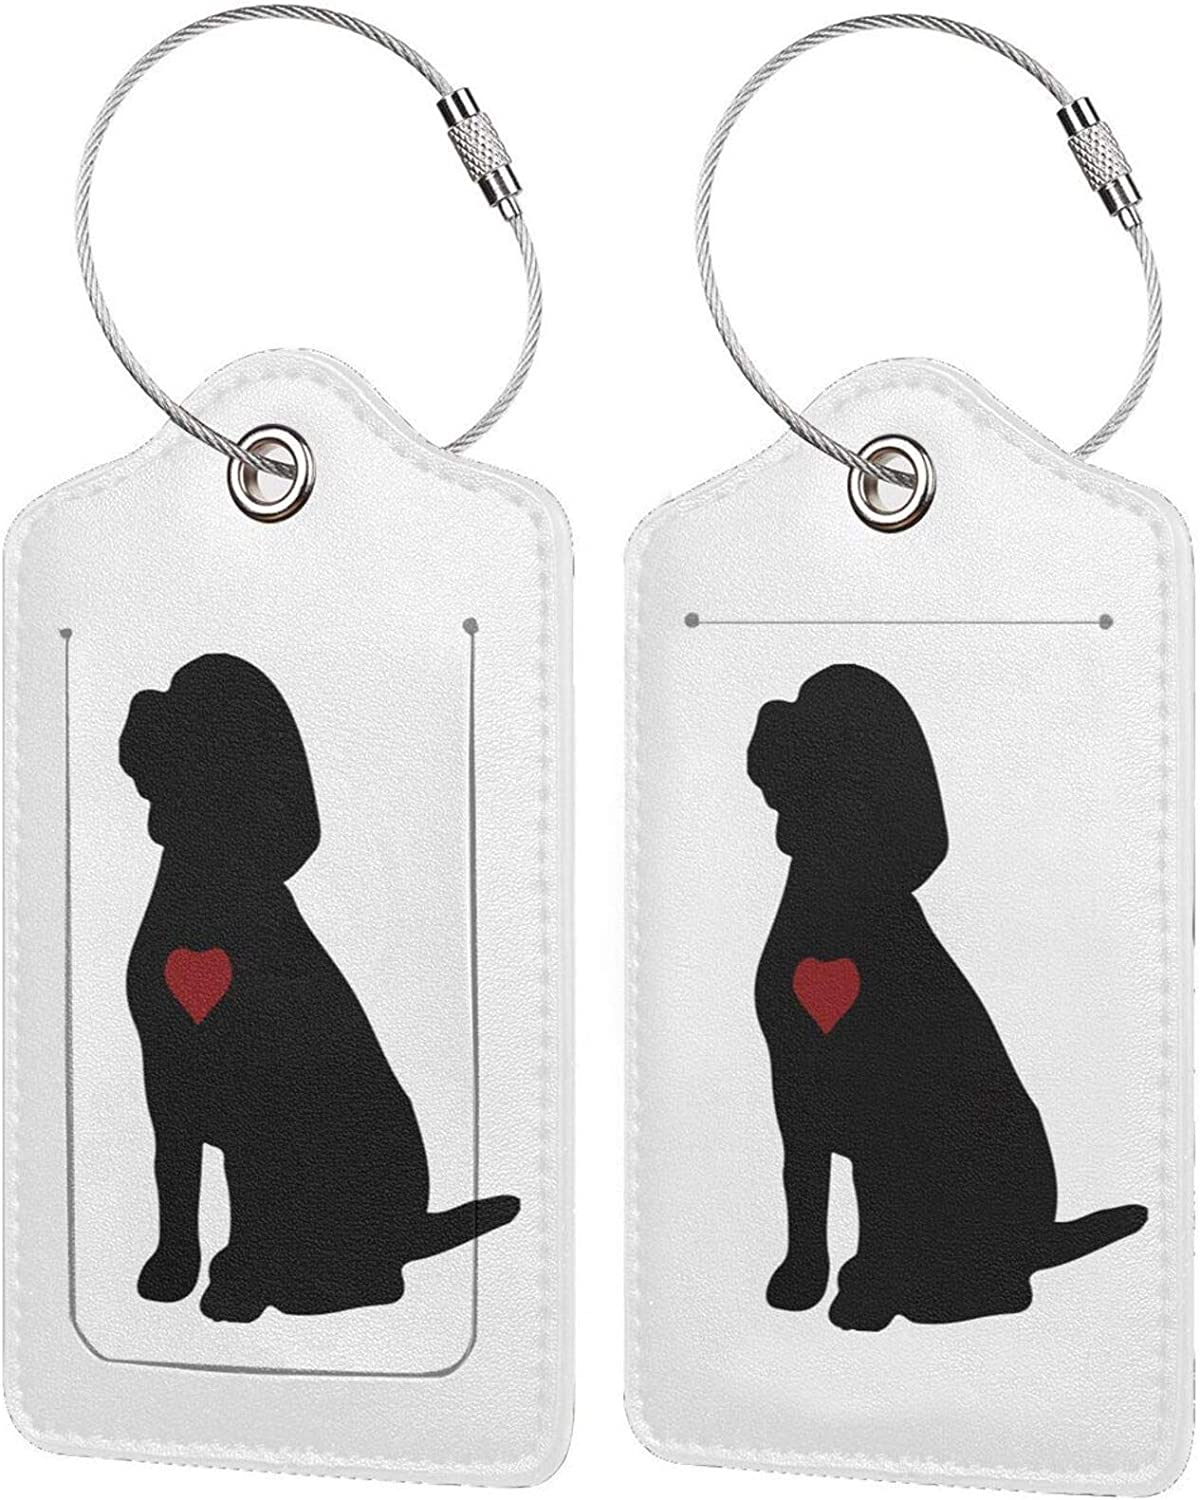 Beagle Puppy Dog Silhouette PU Ful Leather Max 55% OFF Baggage Inexpensive tag Rectangle